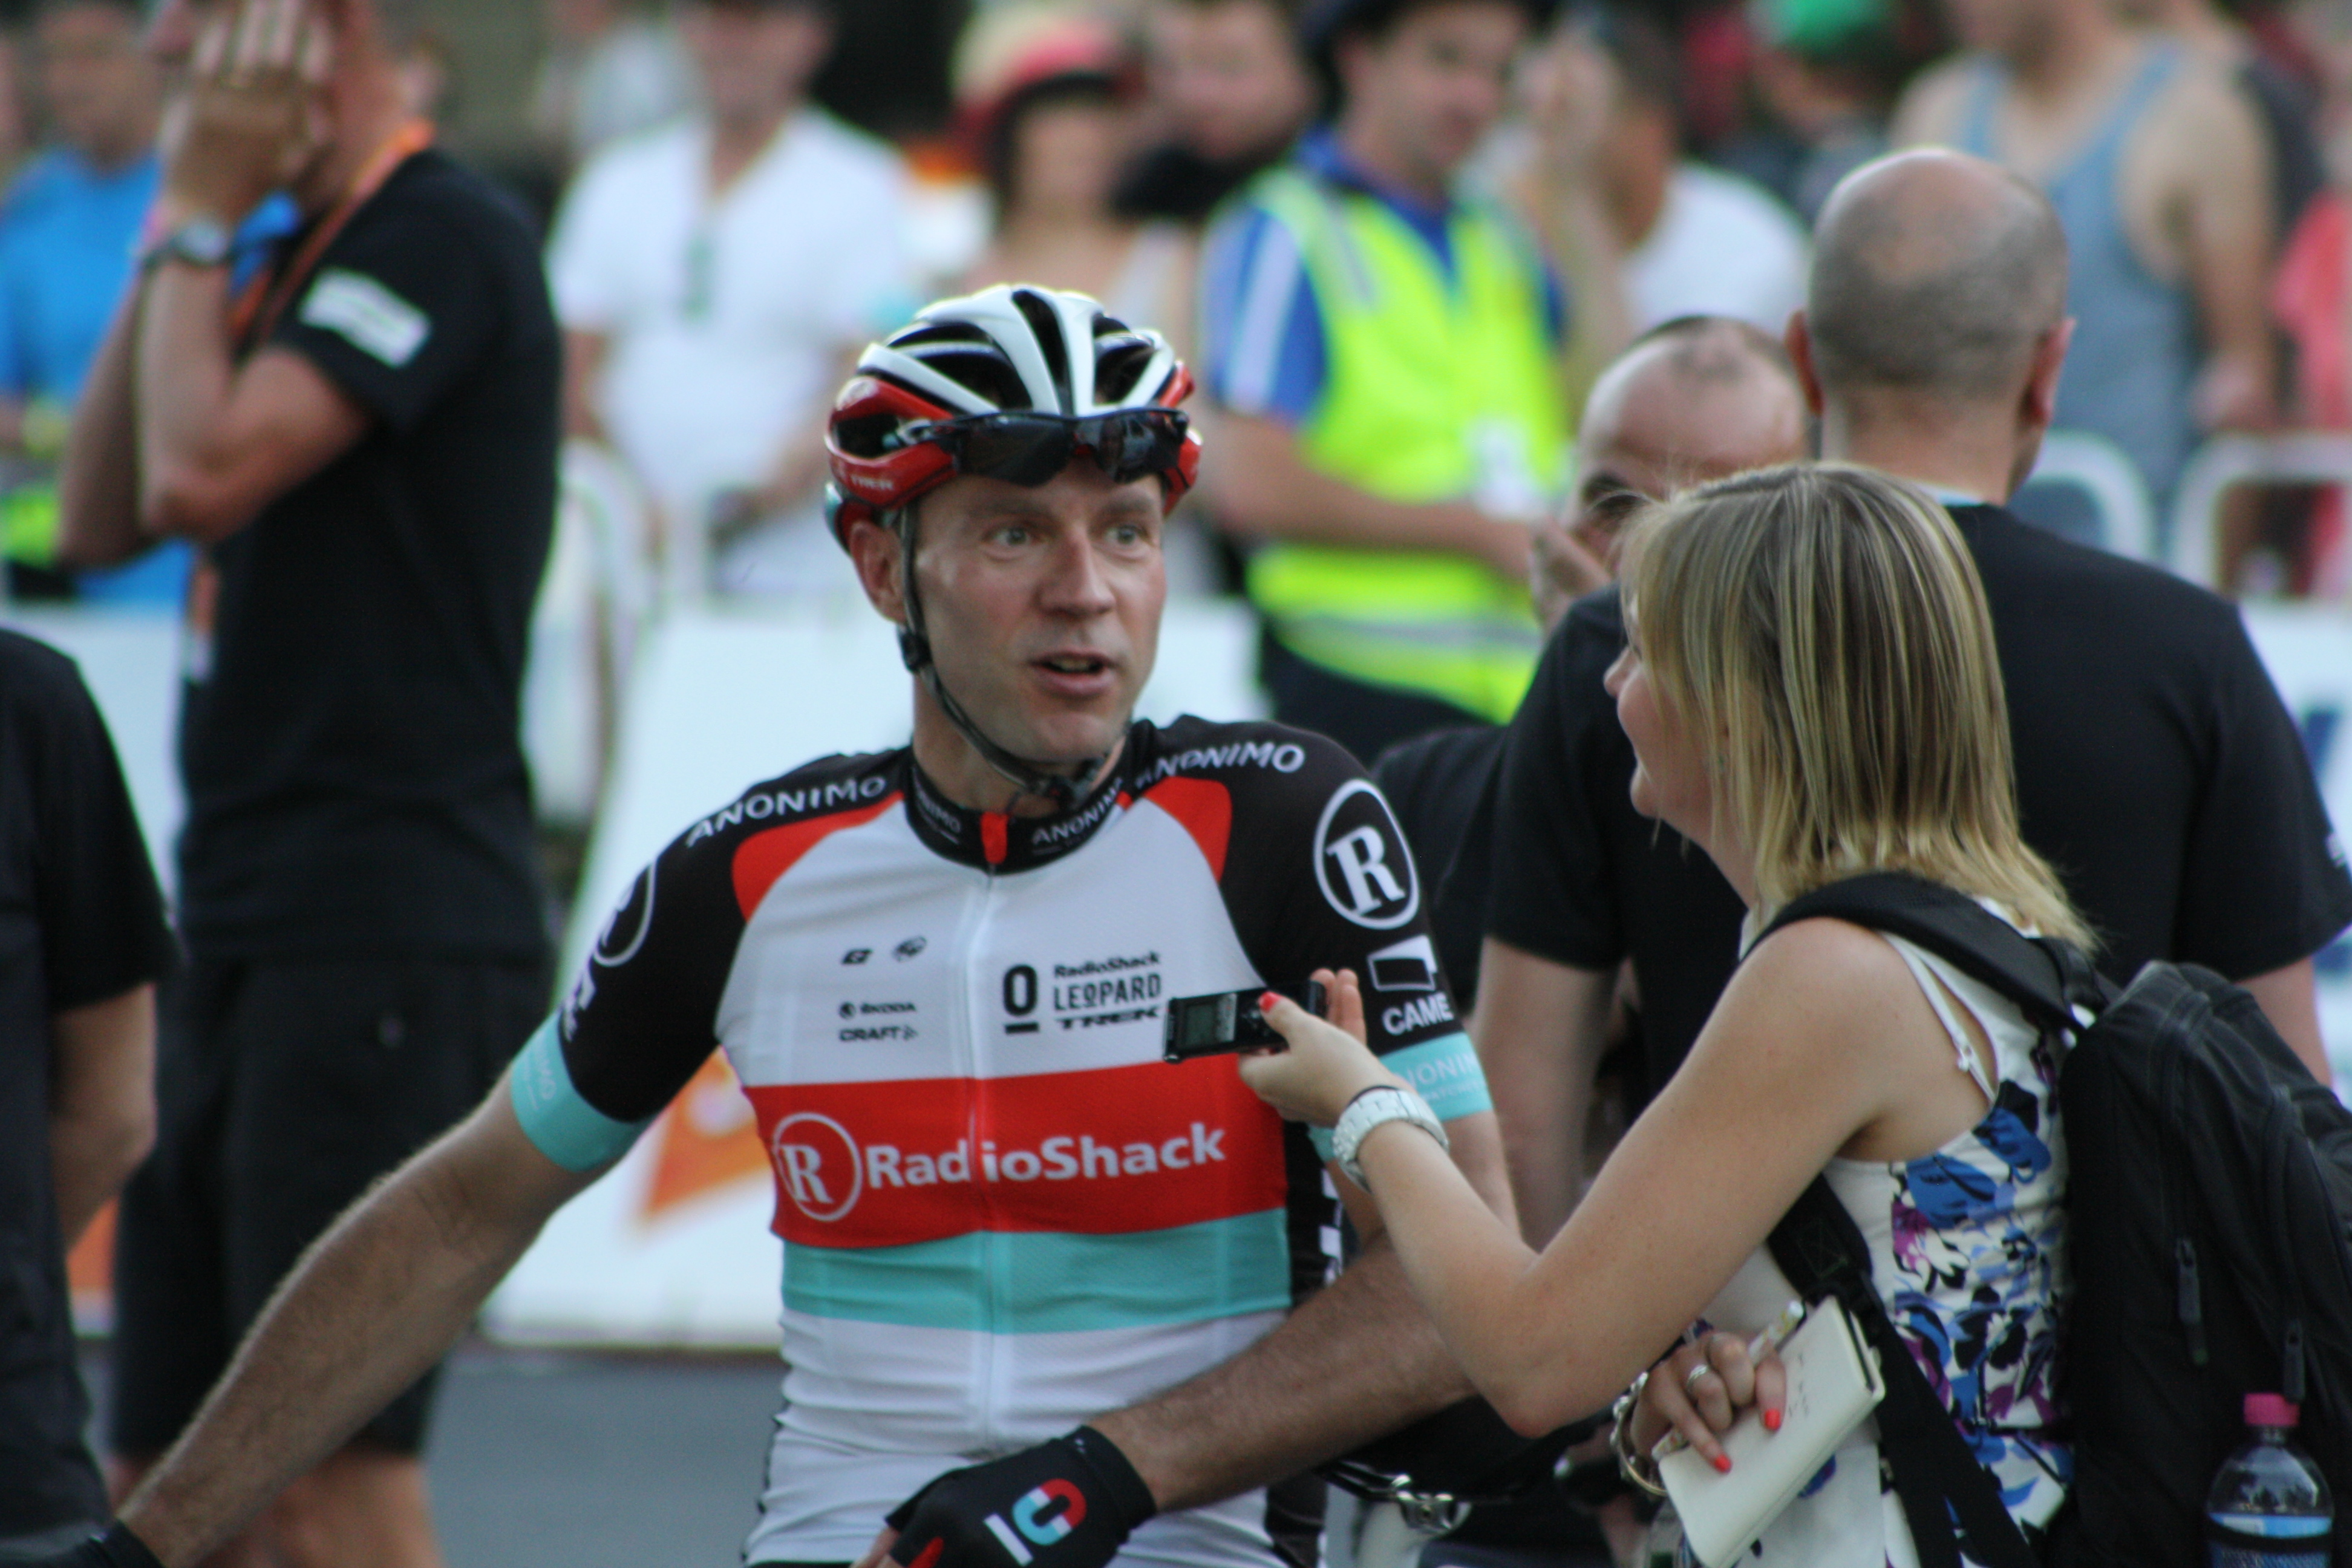 File:Jens Voigt, 2013 Peoples Choice Classic.jpg - Wikimedia Commons